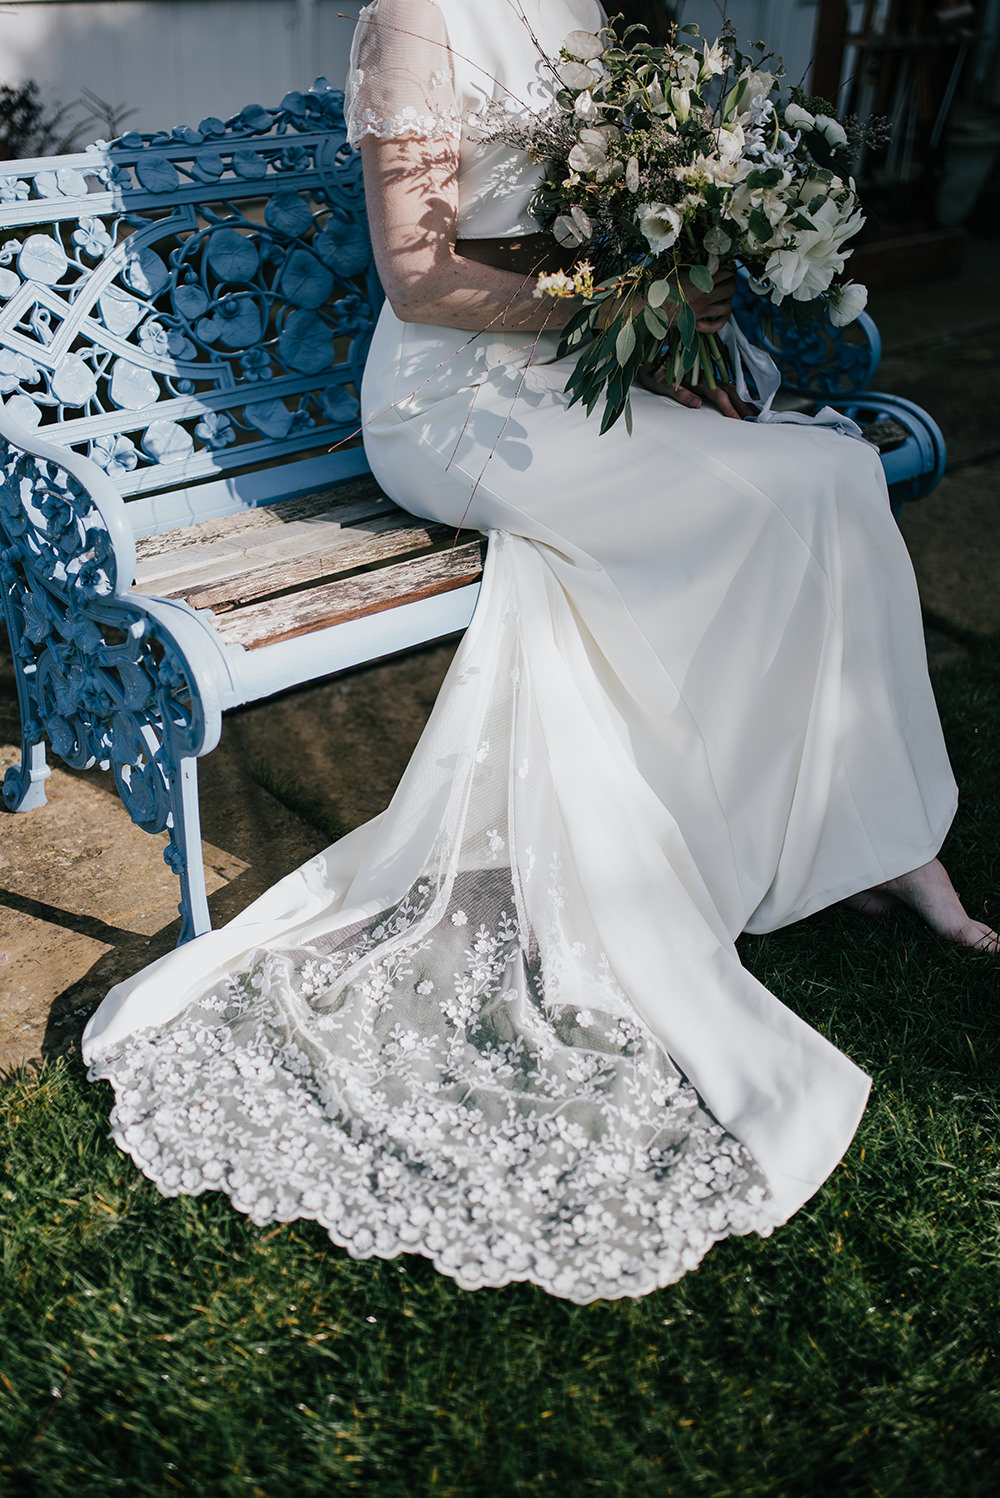 Bride Bridal Dress Gown Top Skirt Crop Sleeves Lace Two Piece Train Blue Wedding Ideas Emma McNair Photography